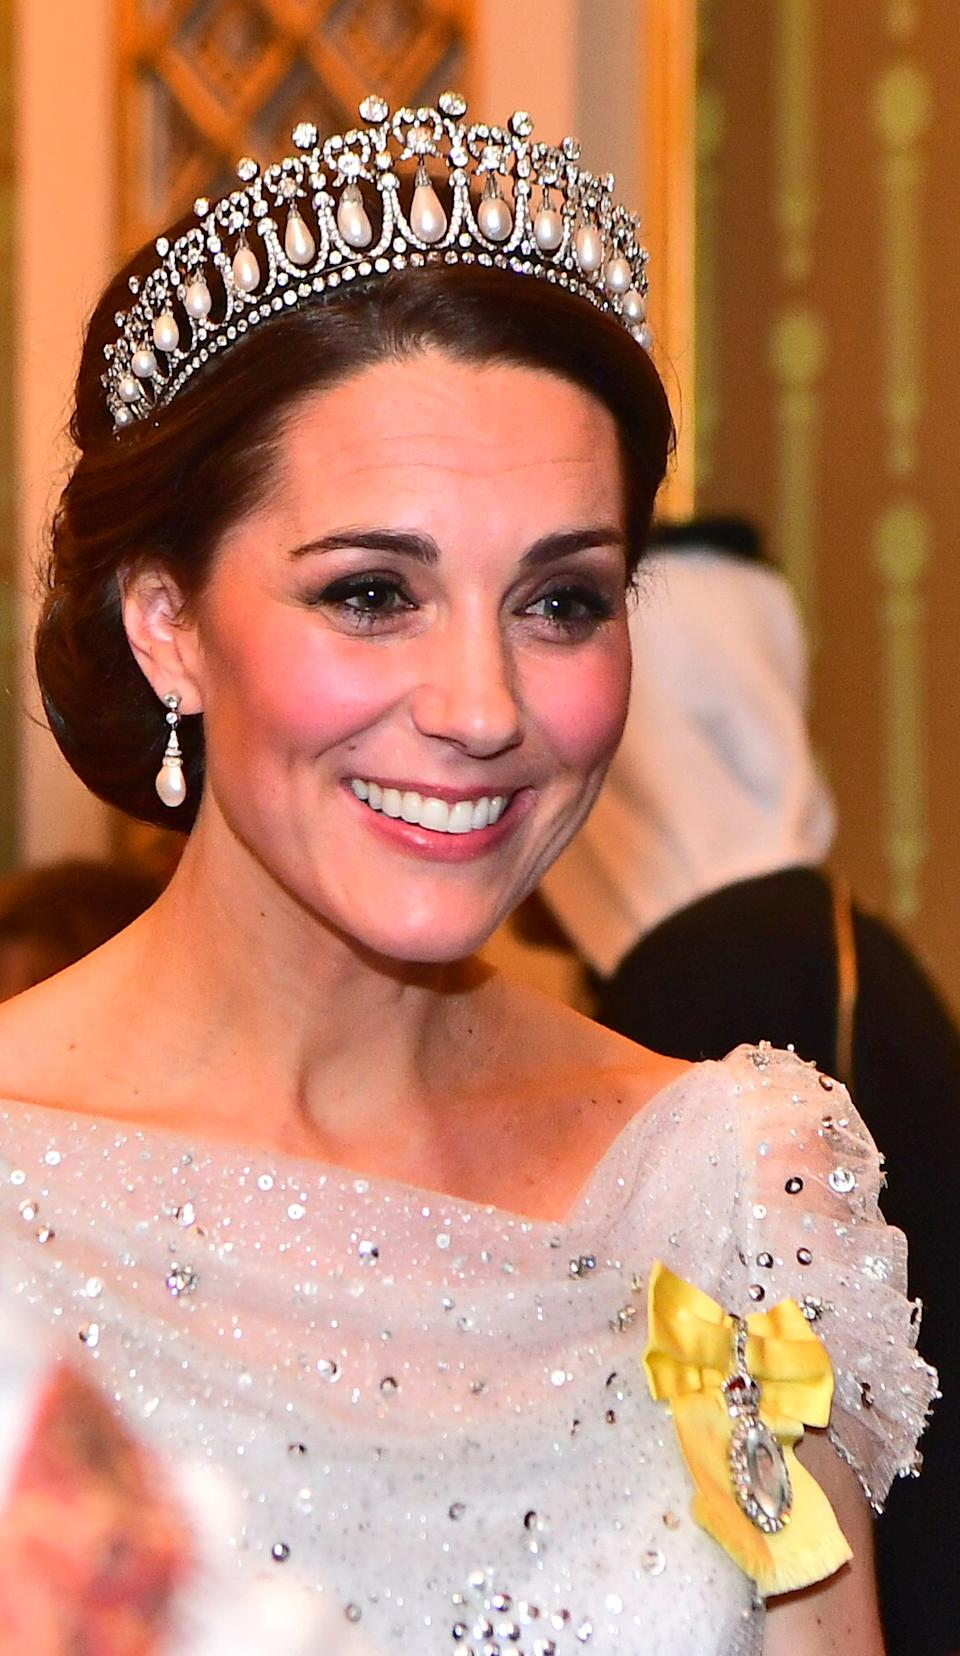 "<p>There's nothing quite like a simple chignon on the Duchess of Cambridge, particularly if it's paired with a huge pearl-and-diamond-studded tiara. This tiara, in particular, is special as it not only was a piece that <a href=""https://www.popsugar.co.uk/fashion/British-Royal-Tiaras-42087020"" class=""link rapid-noclick-resp"" rel=""nofollow noopener"" target=""_blank"" data-ylk=""slk:Princess Diana frequently wore"">Princess Diana frequently wore</a>, but it also has been in the royal family for over a century. According to <b>Town & Country</b>, the tiara seen here was made in<br> <a href=""https://www.townandcountrymag.com/society/tradition/g26533742/kate-middleton-tiara-moments/"" class=""link rapid-noclick-resp"" rel=""nofollow noopener"" target=""_blank"" data-ylk=""slk:was made in 1913 or 1914 for Queen Mary"">was made in 1913 or 1914 for Queen Mary</a> using pearls and diamonds already owned by the monarch's family, and is inspired by a tiara owned by Queen Augusta of Hesse-Cassel (another Duchess of Cambridge and one of Queen Victoria's aunts) called the Cambridge Lover's Knot. </p>"